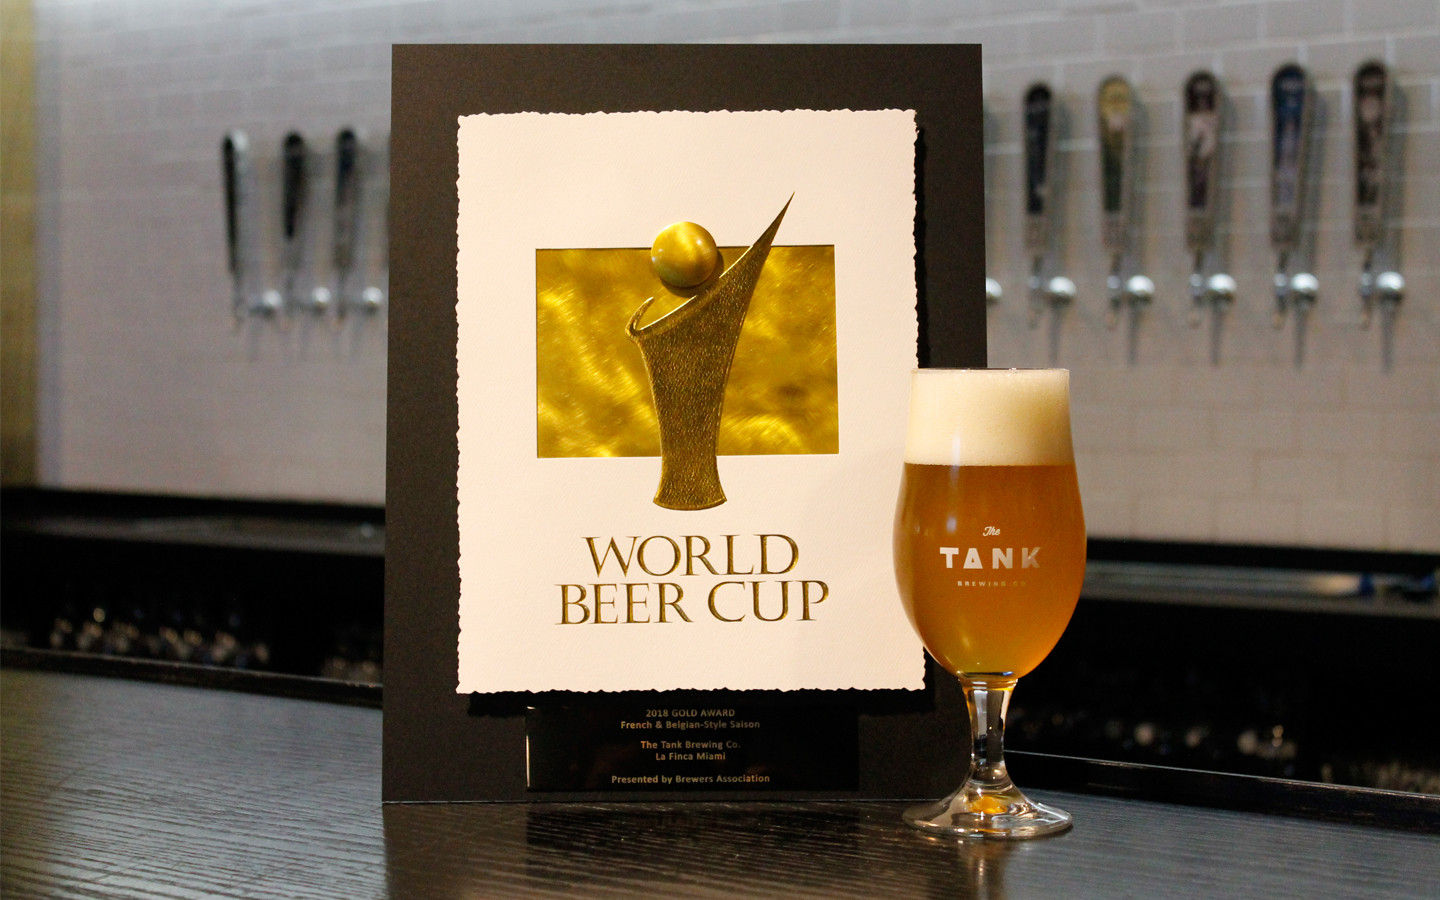 La Finca Miami - World Beer Cup 2018 Gold Winner